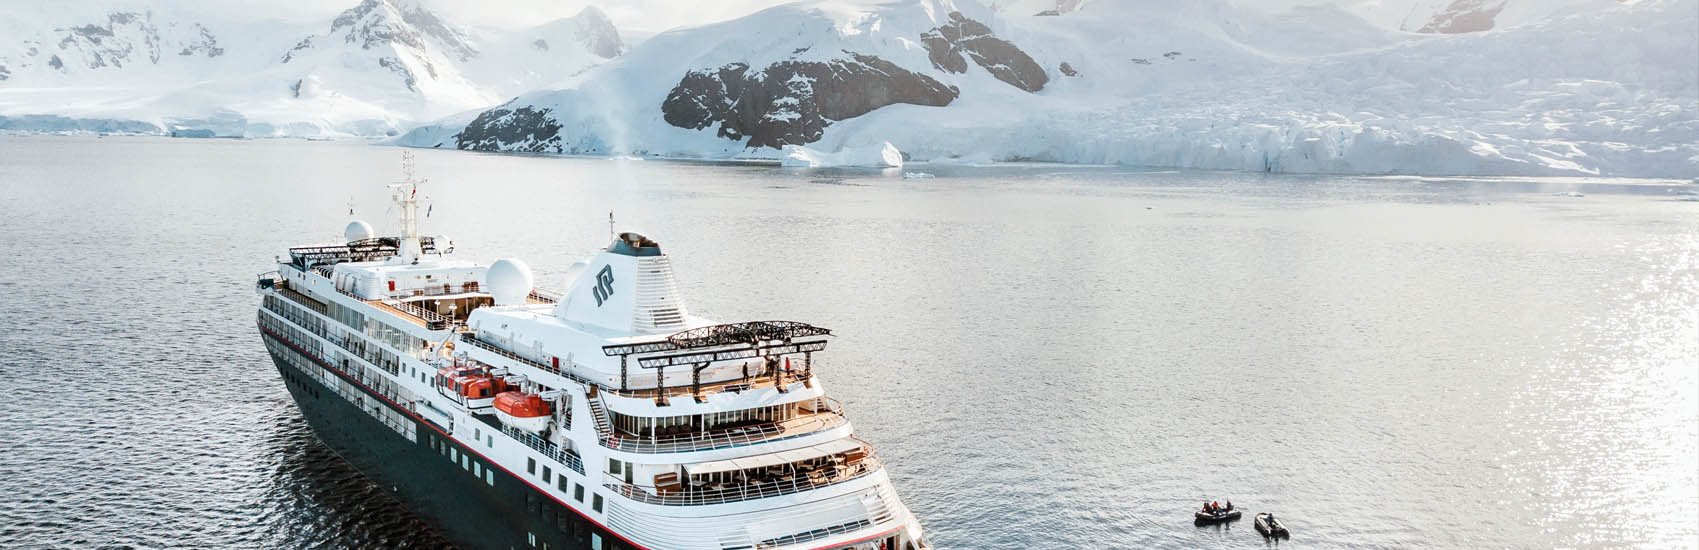 Explore the Arctic with Silversea!